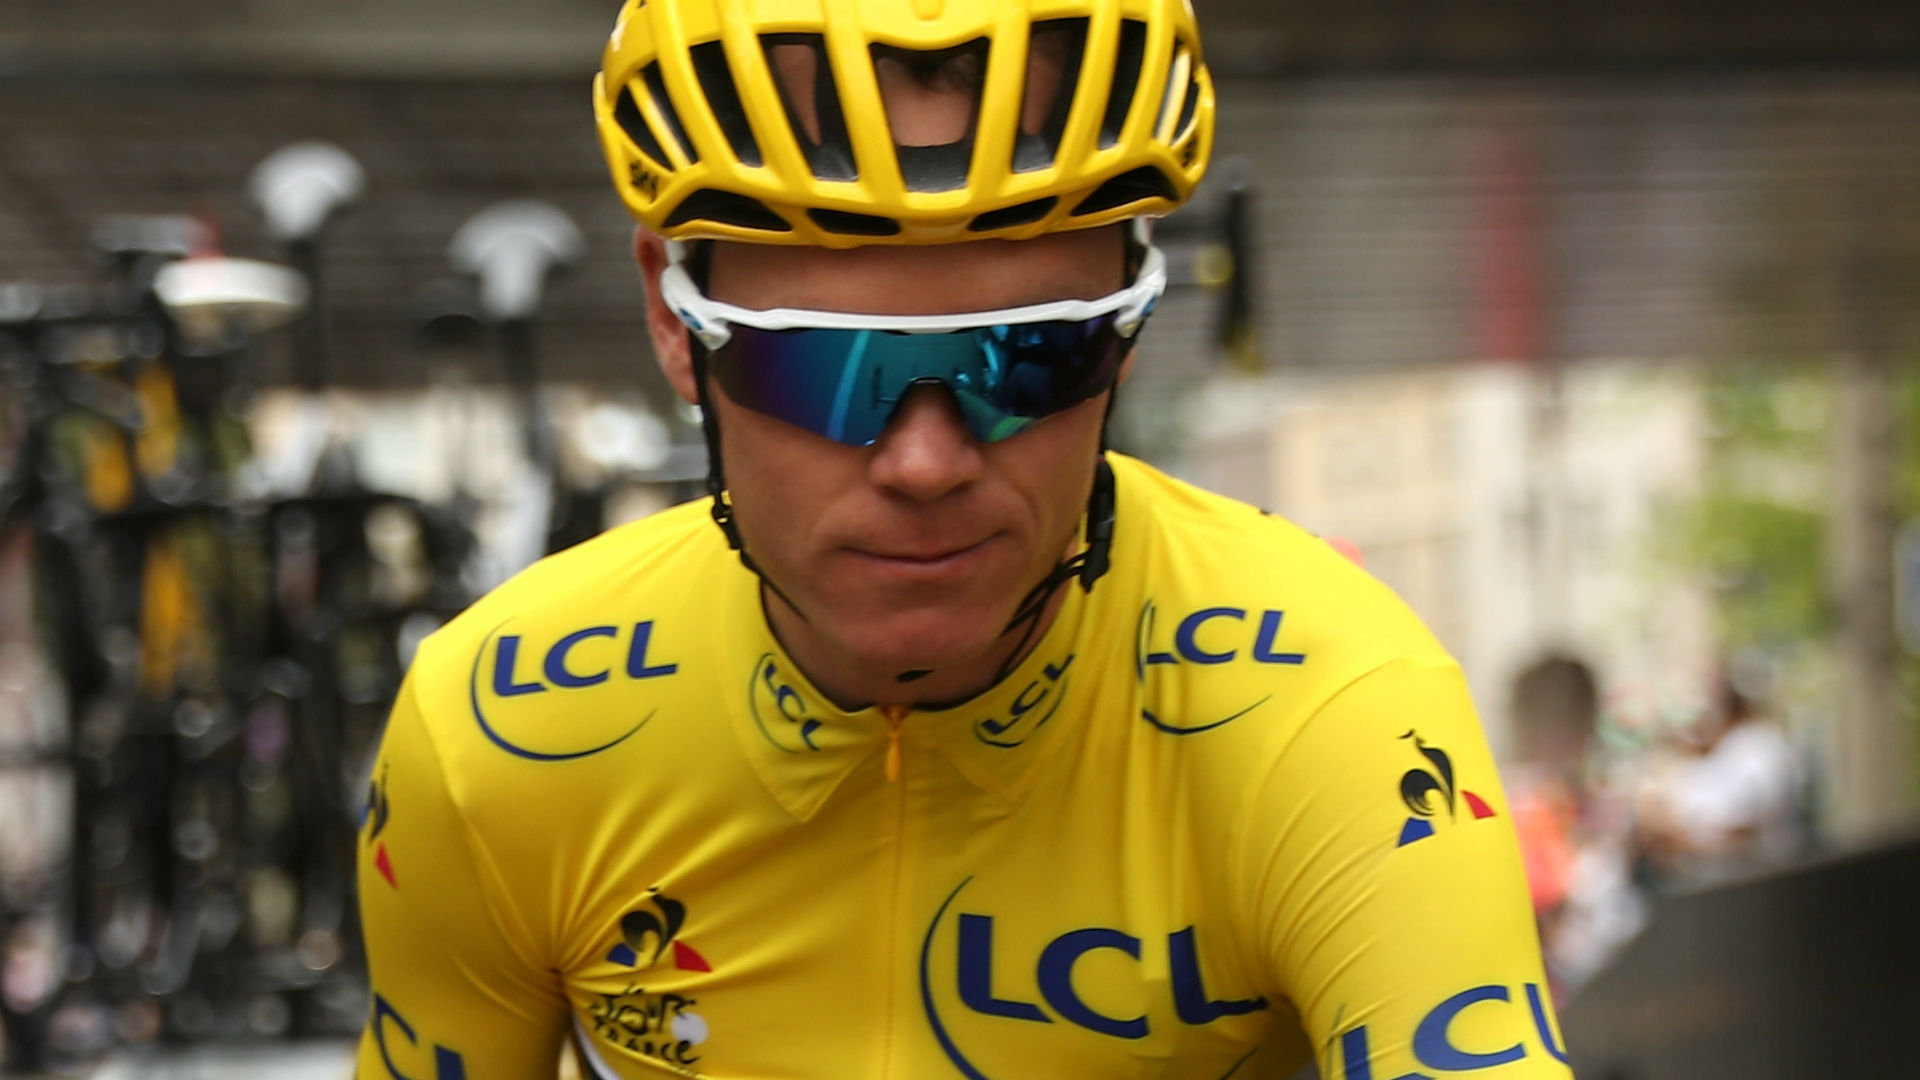 Team INEOS have provided an update on Chris Froome, who will miss the Tour de France after crashing in the Criterium du Dauphine.